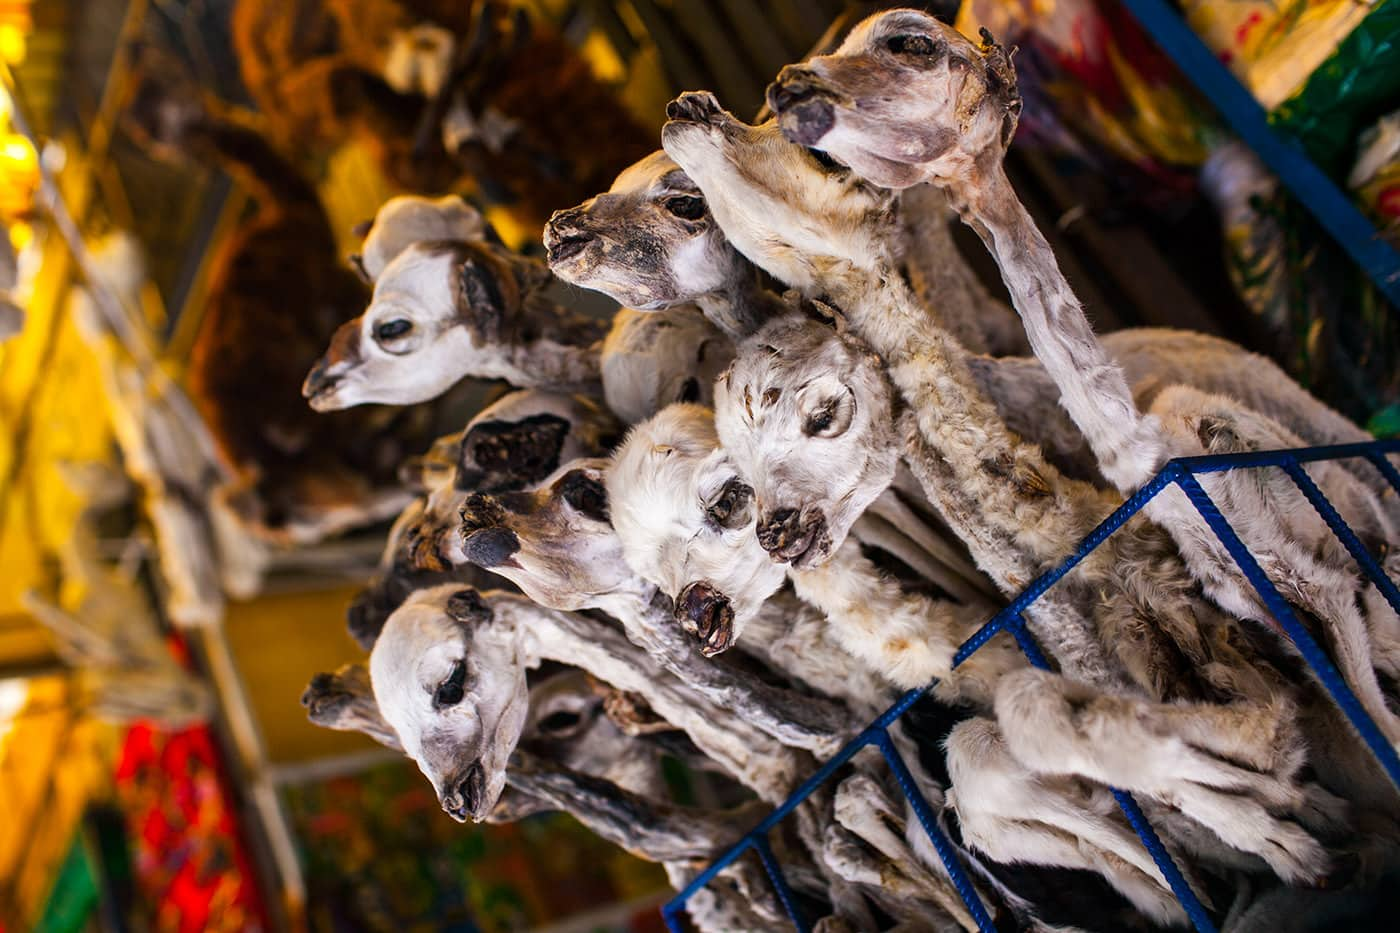 Llama fetus at the Witches' Market in La Paz, Bolivia